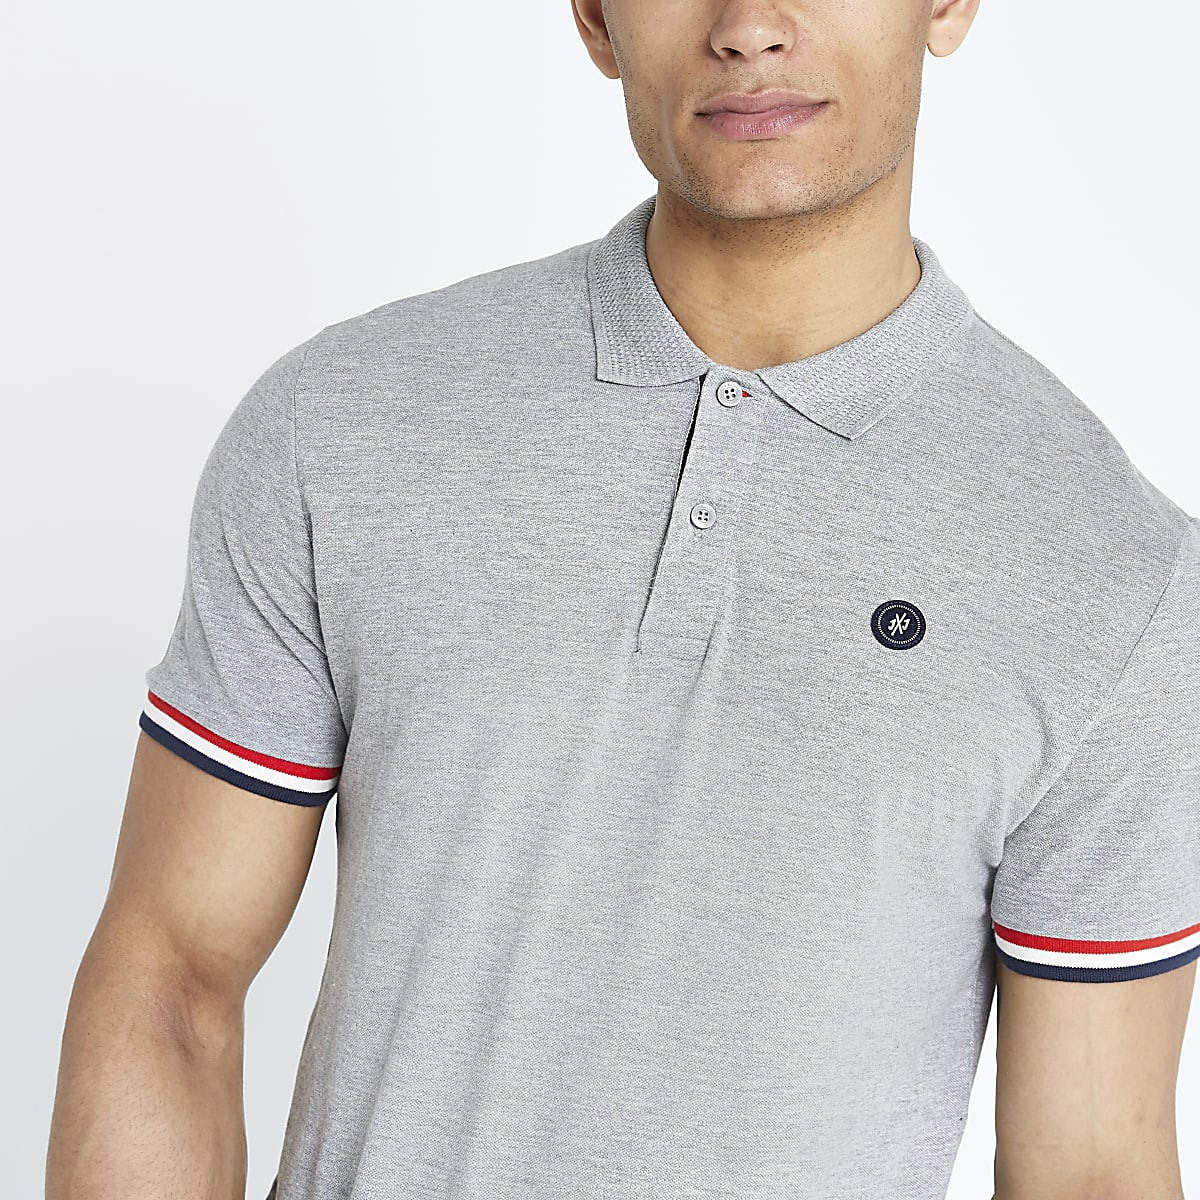 Jack and Jones - Grijs poloshirt